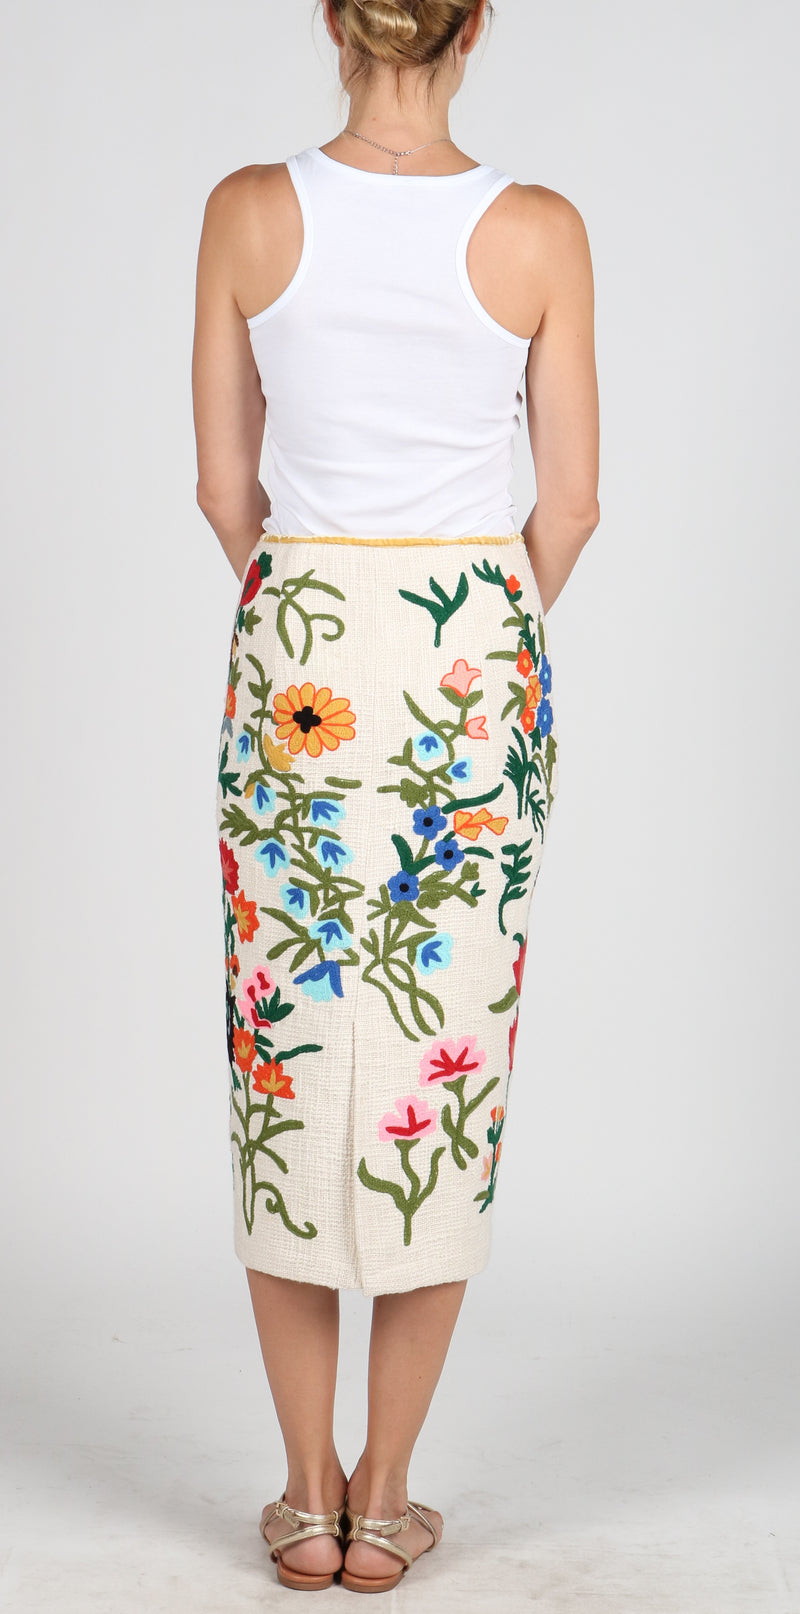 Fanm Mon BLOOM Hand Loom Cotton Multi Color Floral Embroidered Long Skirt